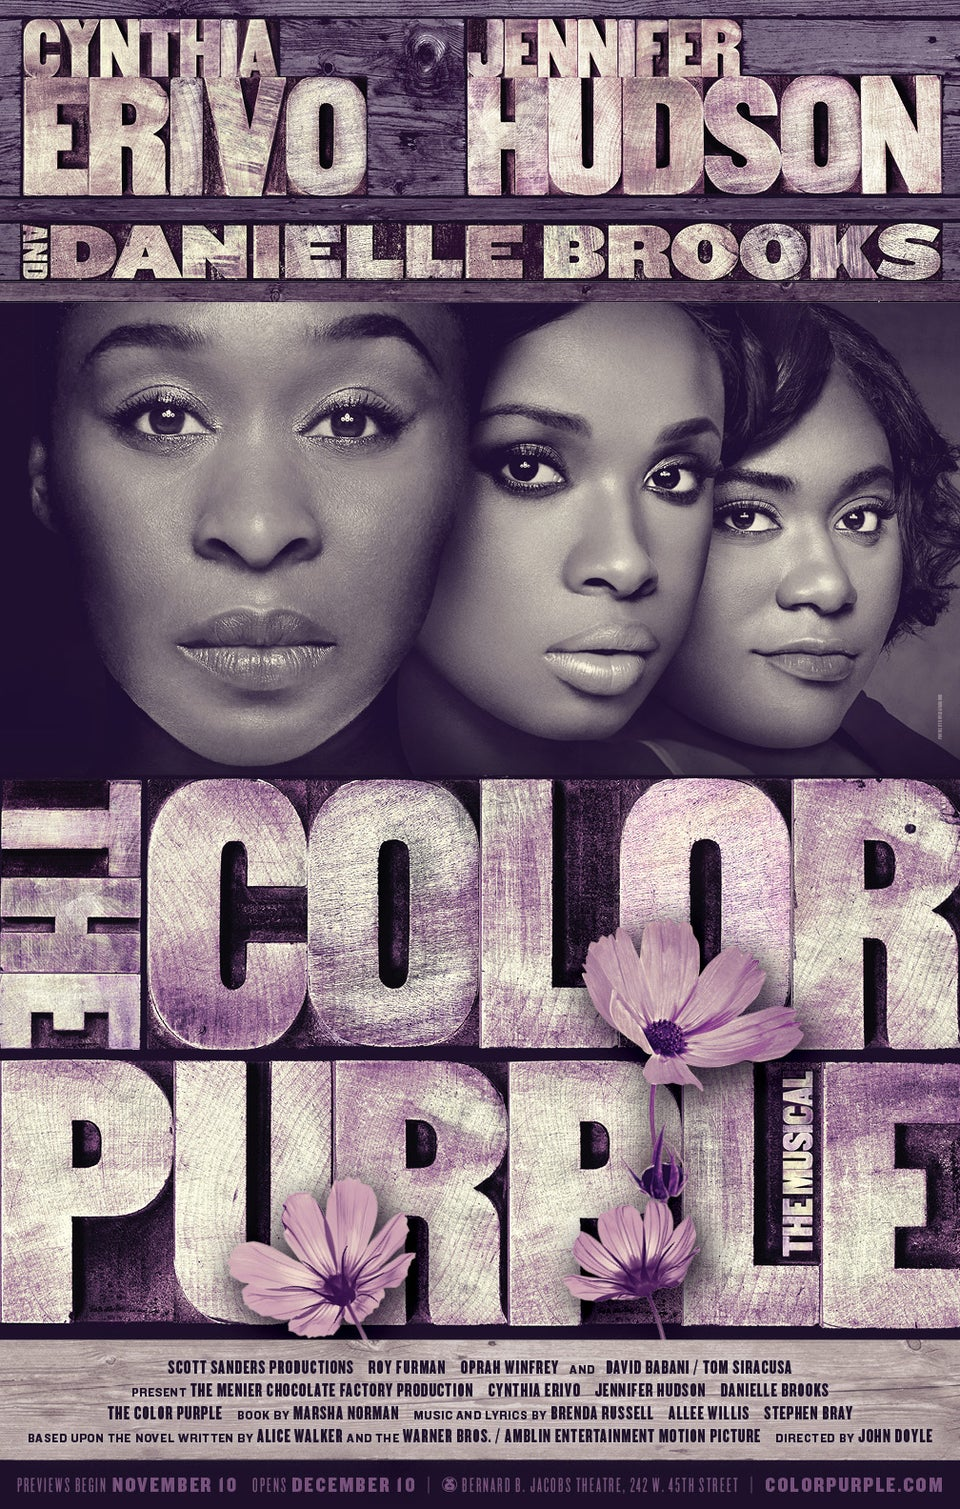 EXCLUSIVE: See Poster for Broadway Revival of 'The Color Purple'